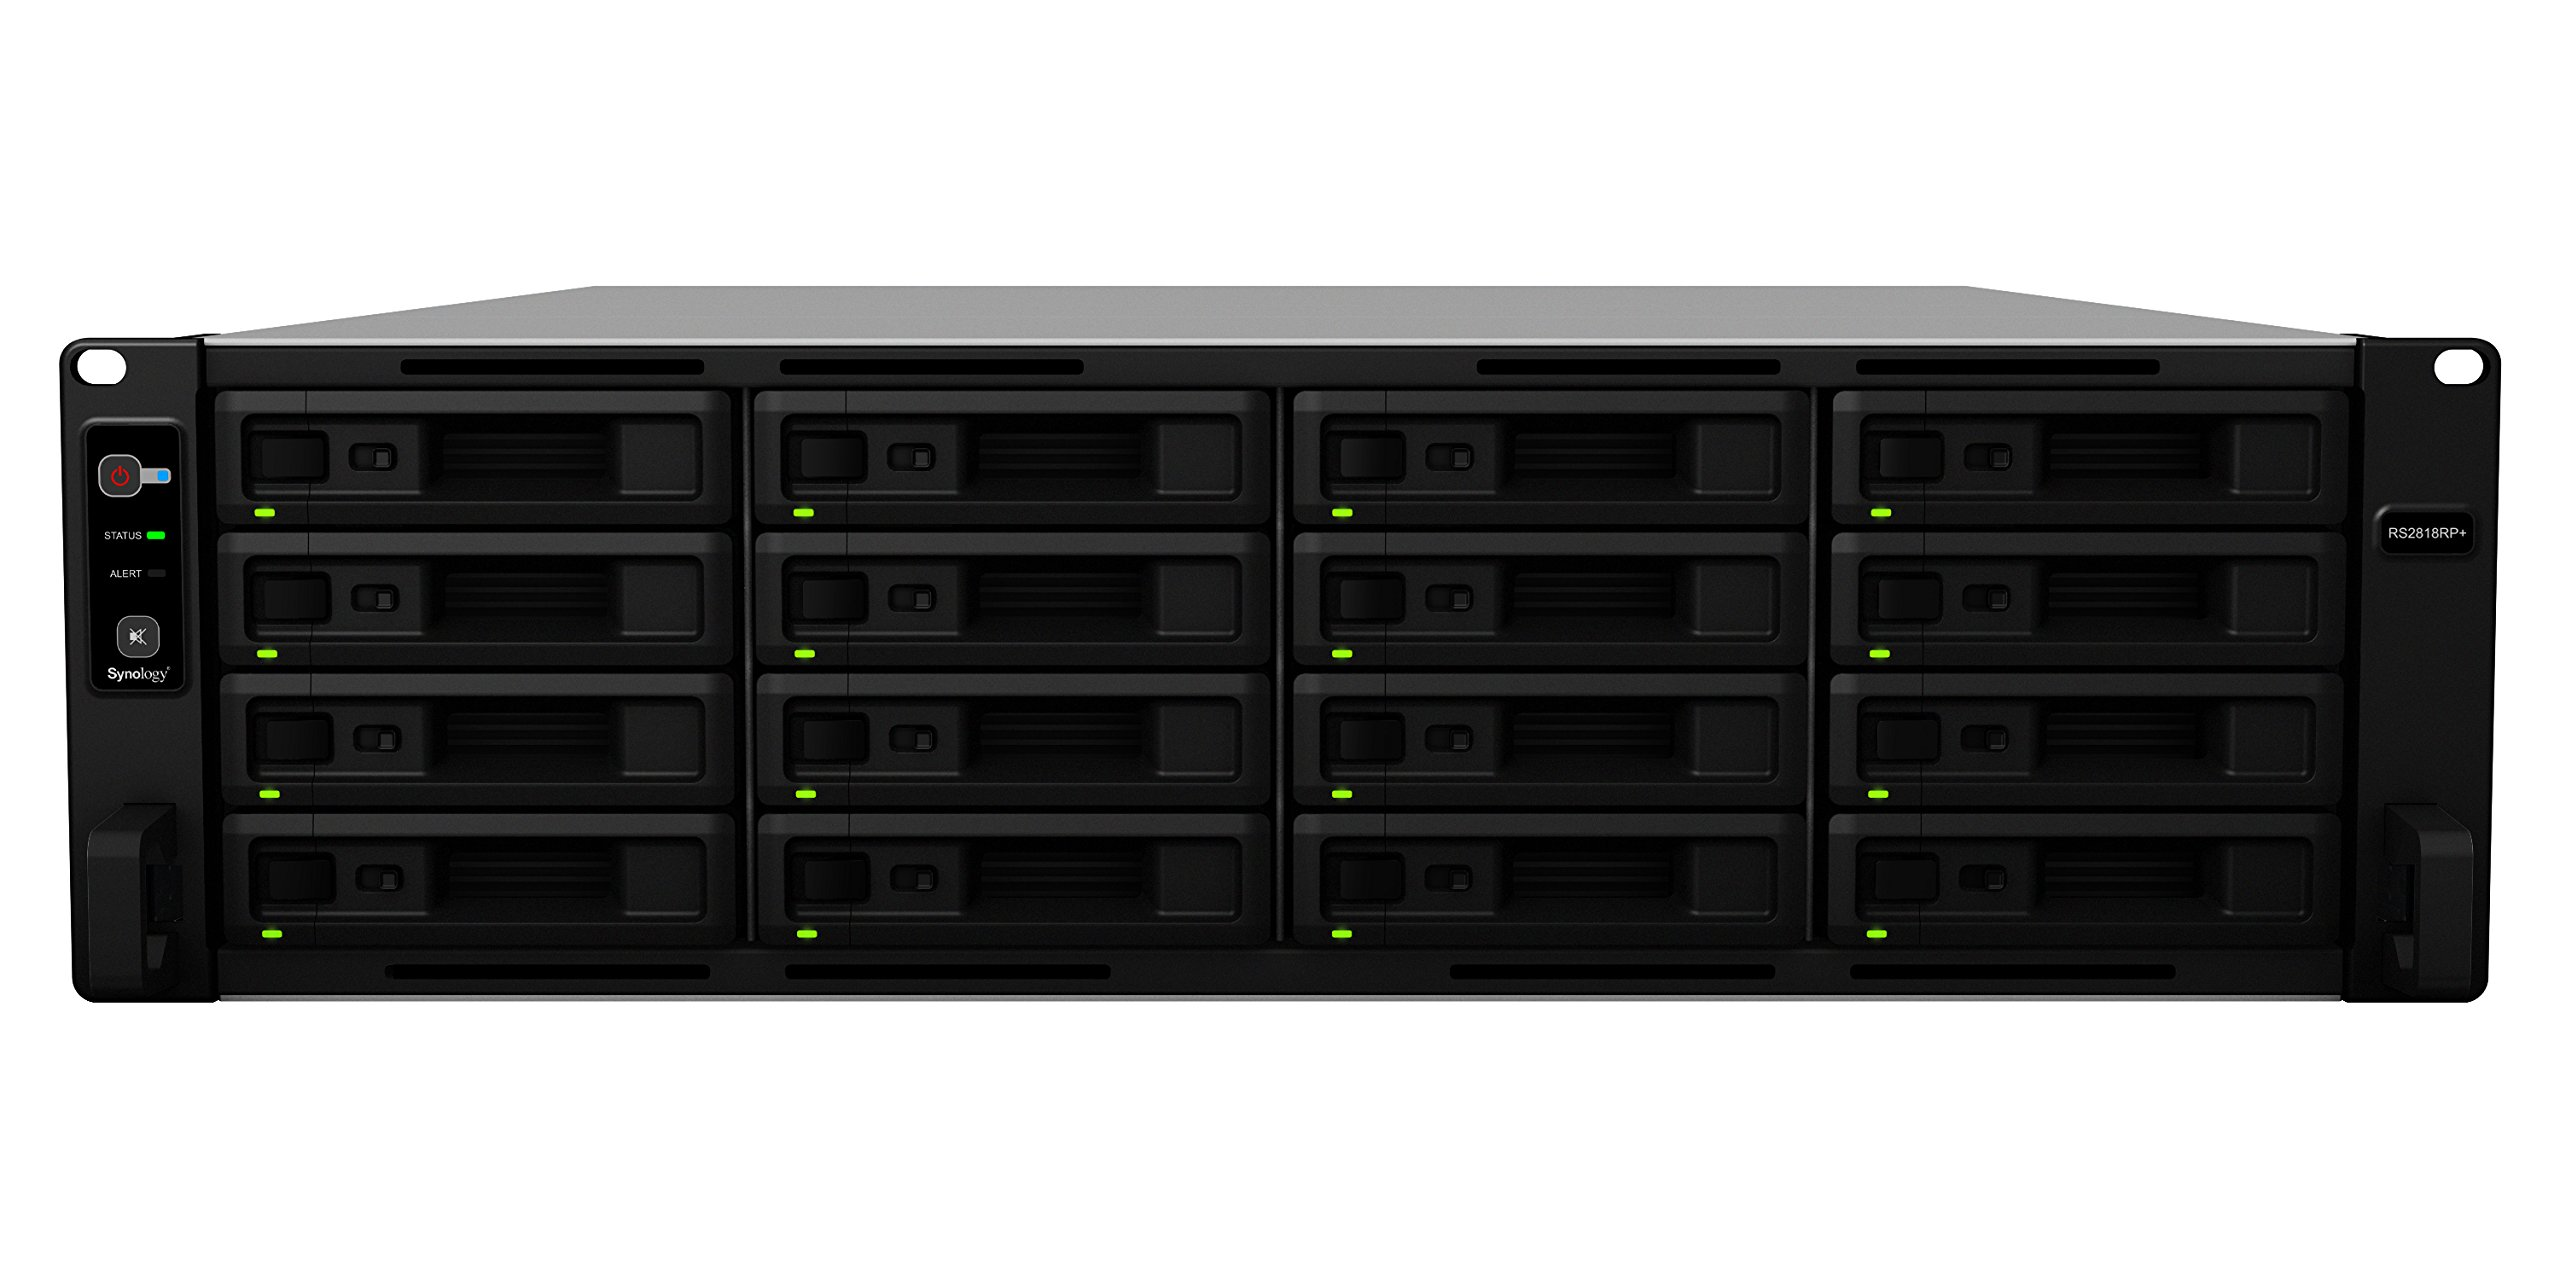 Synology RS2818RP+ 16bay NAS Rack Station (Diskless) by Synology (Image #2)